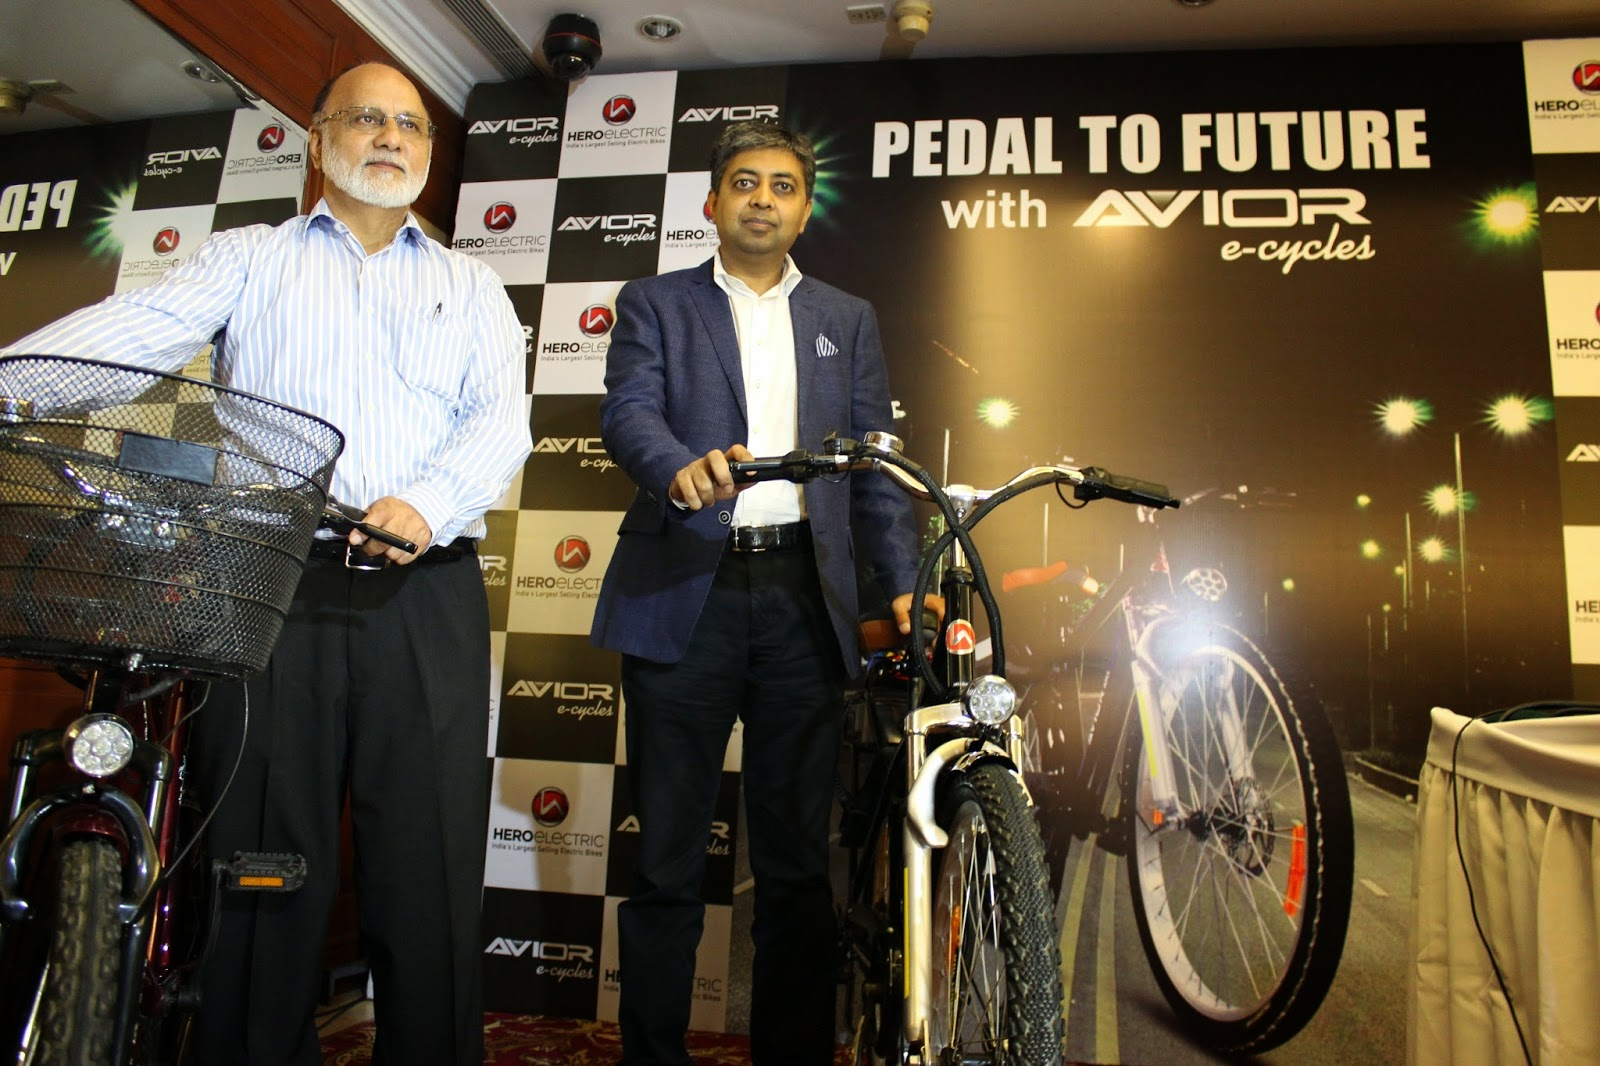 Hero Electric launches their revolutionary electric cycle AVIOR in India